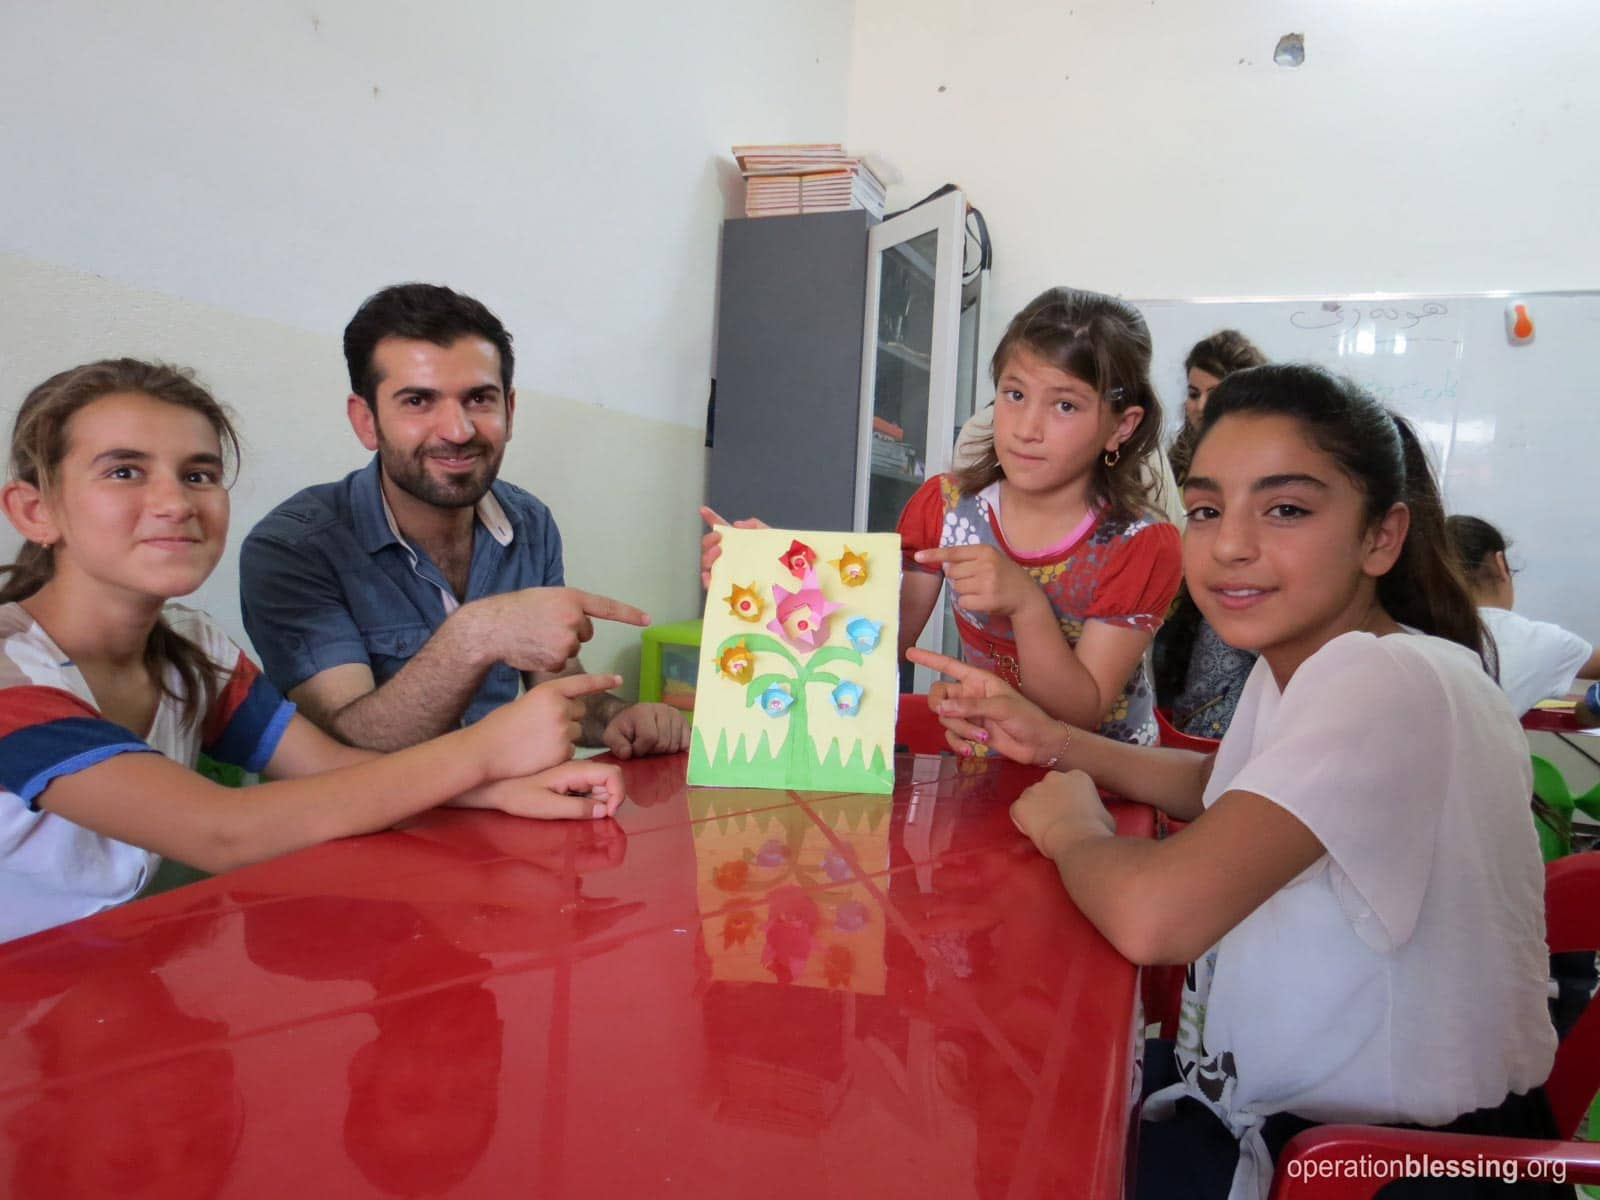 Kids in Iraq share their artwork.